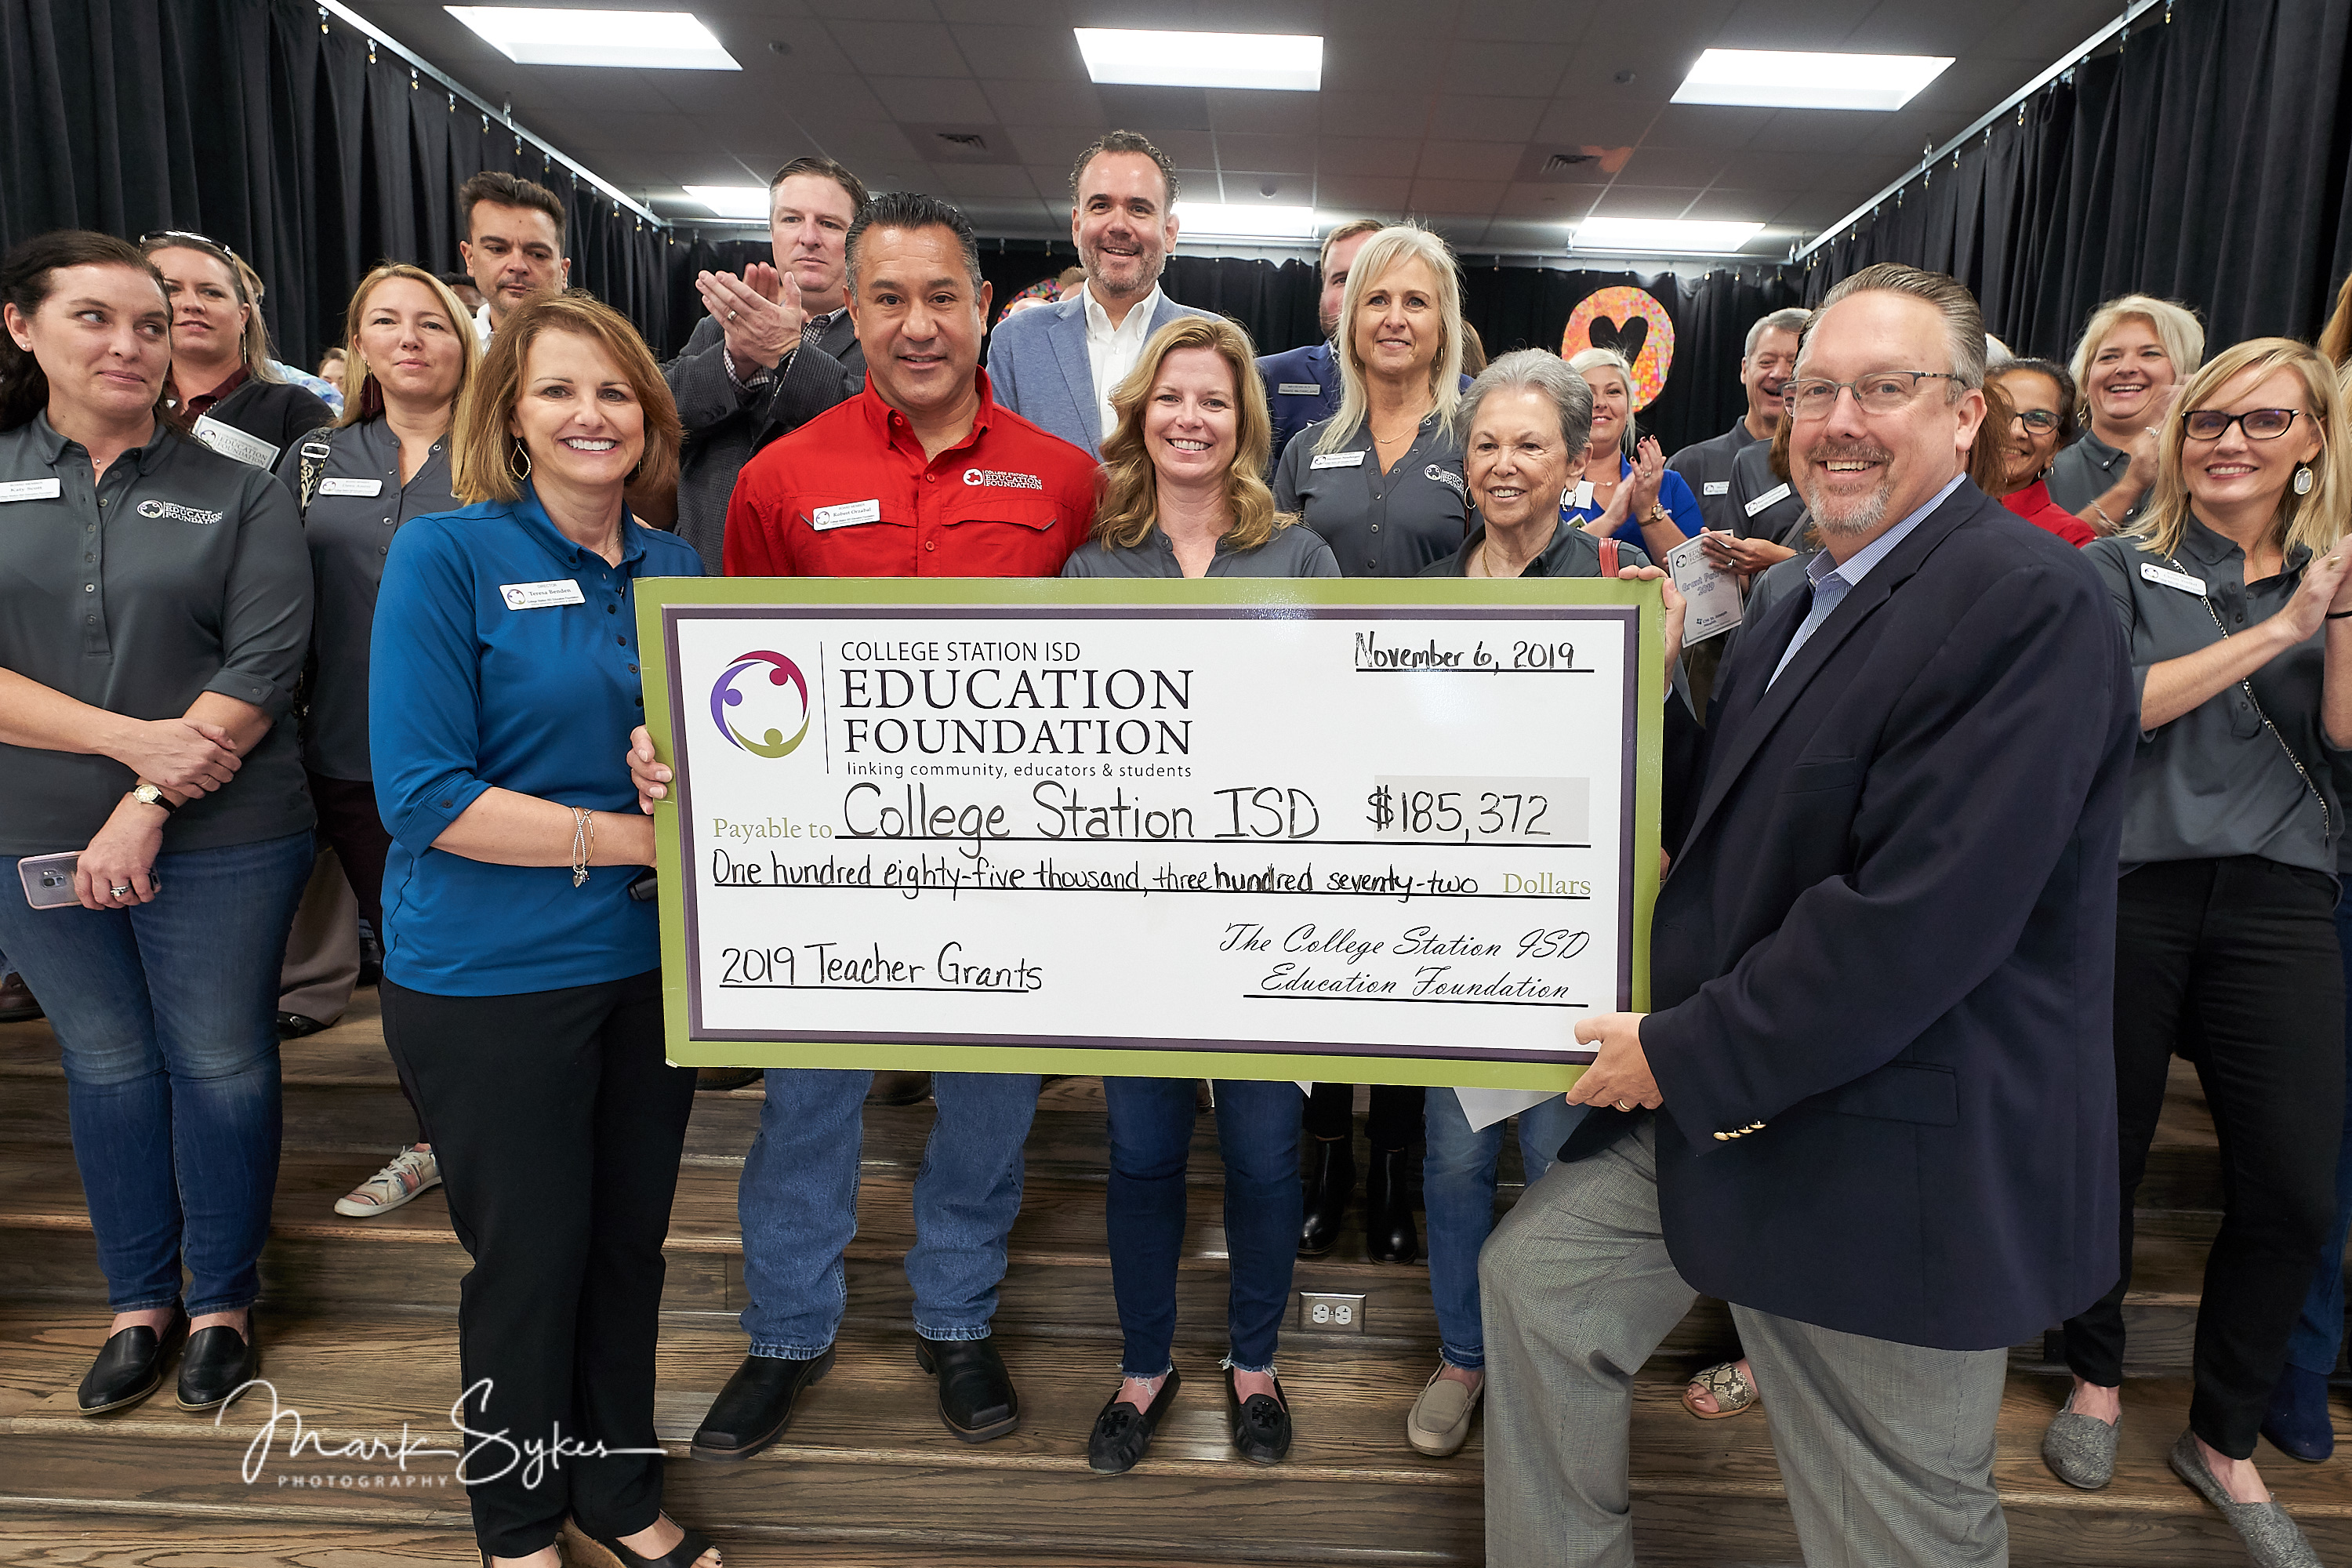 College Station Teachers Receive $185,000 in Innovative Grants from CSISD Education Foundation